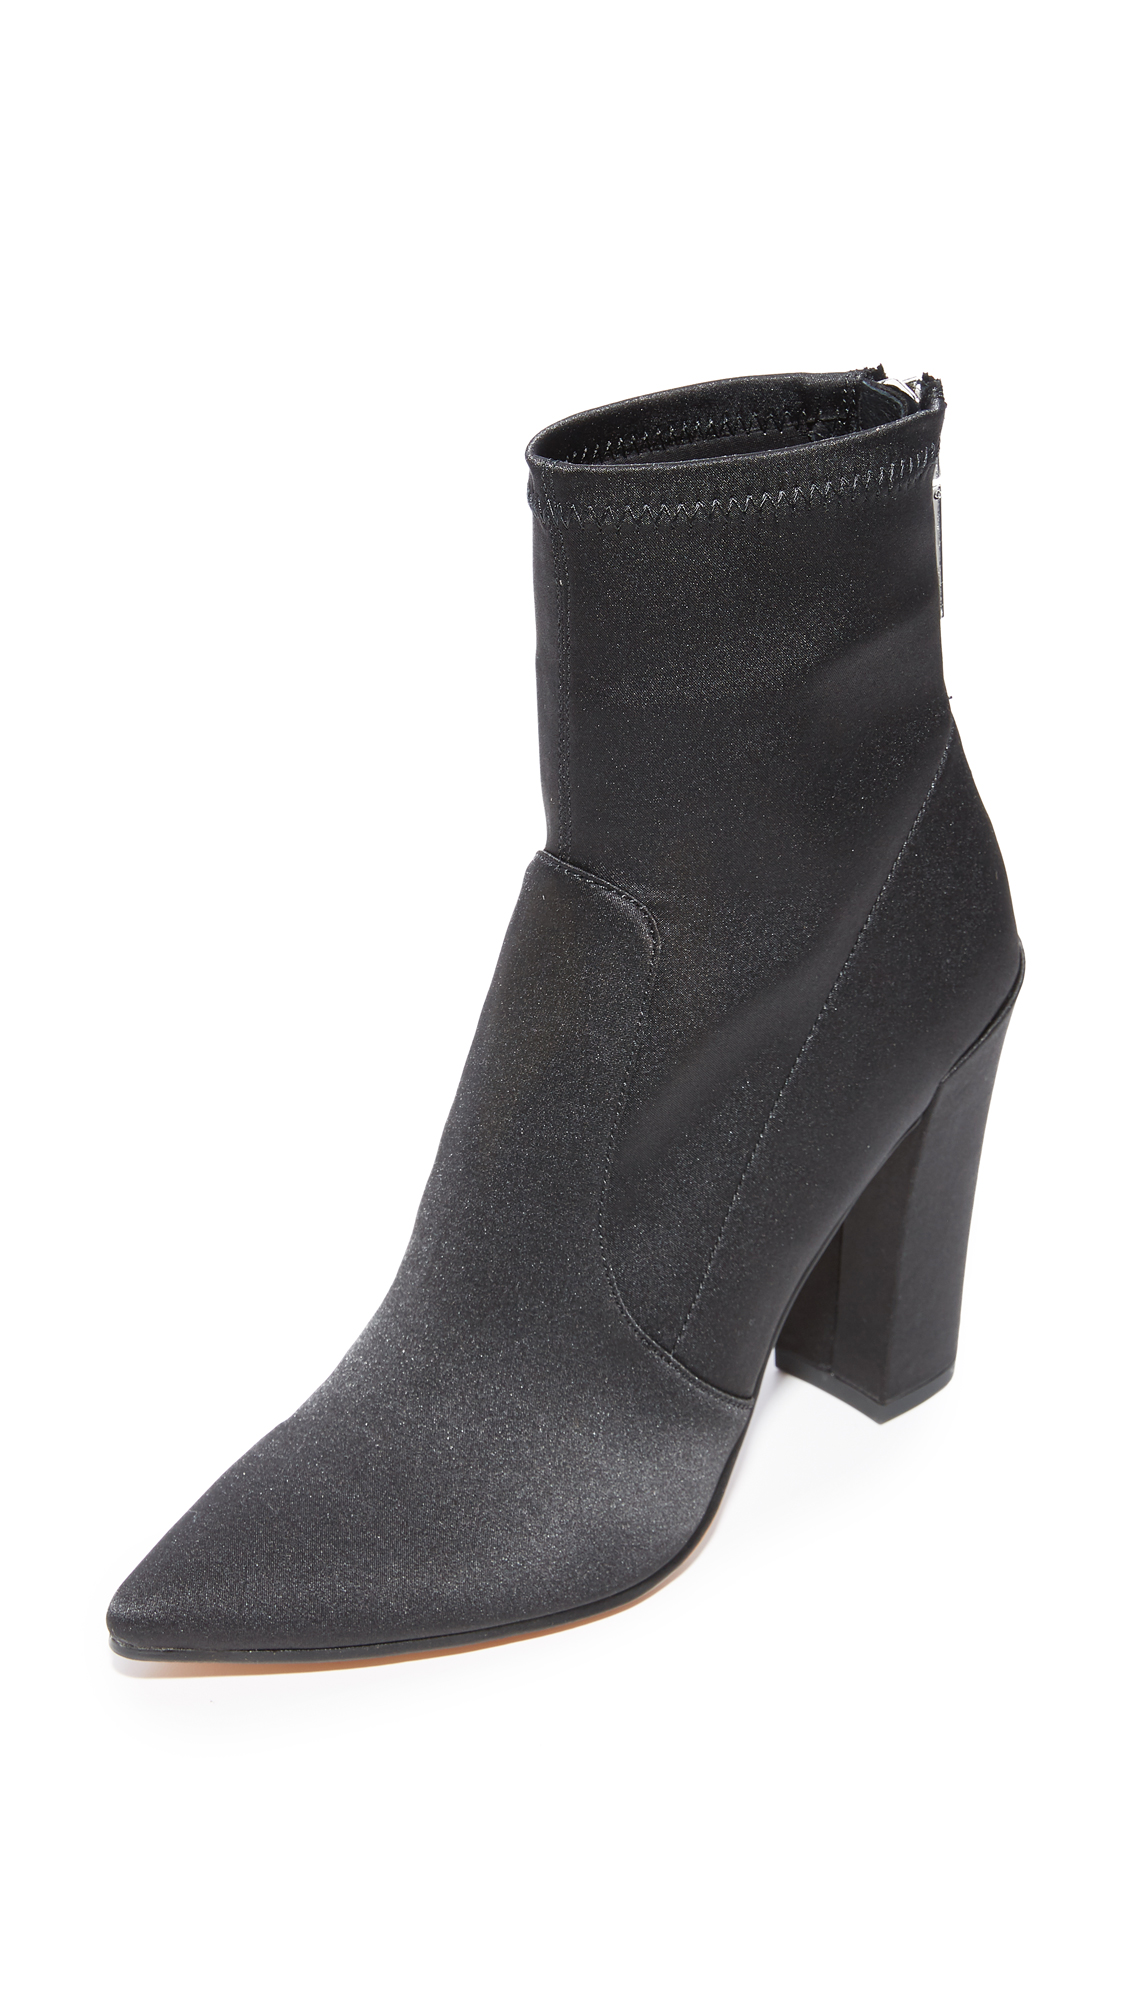 Dolce Vita Elana Stretch Booties - Onyx